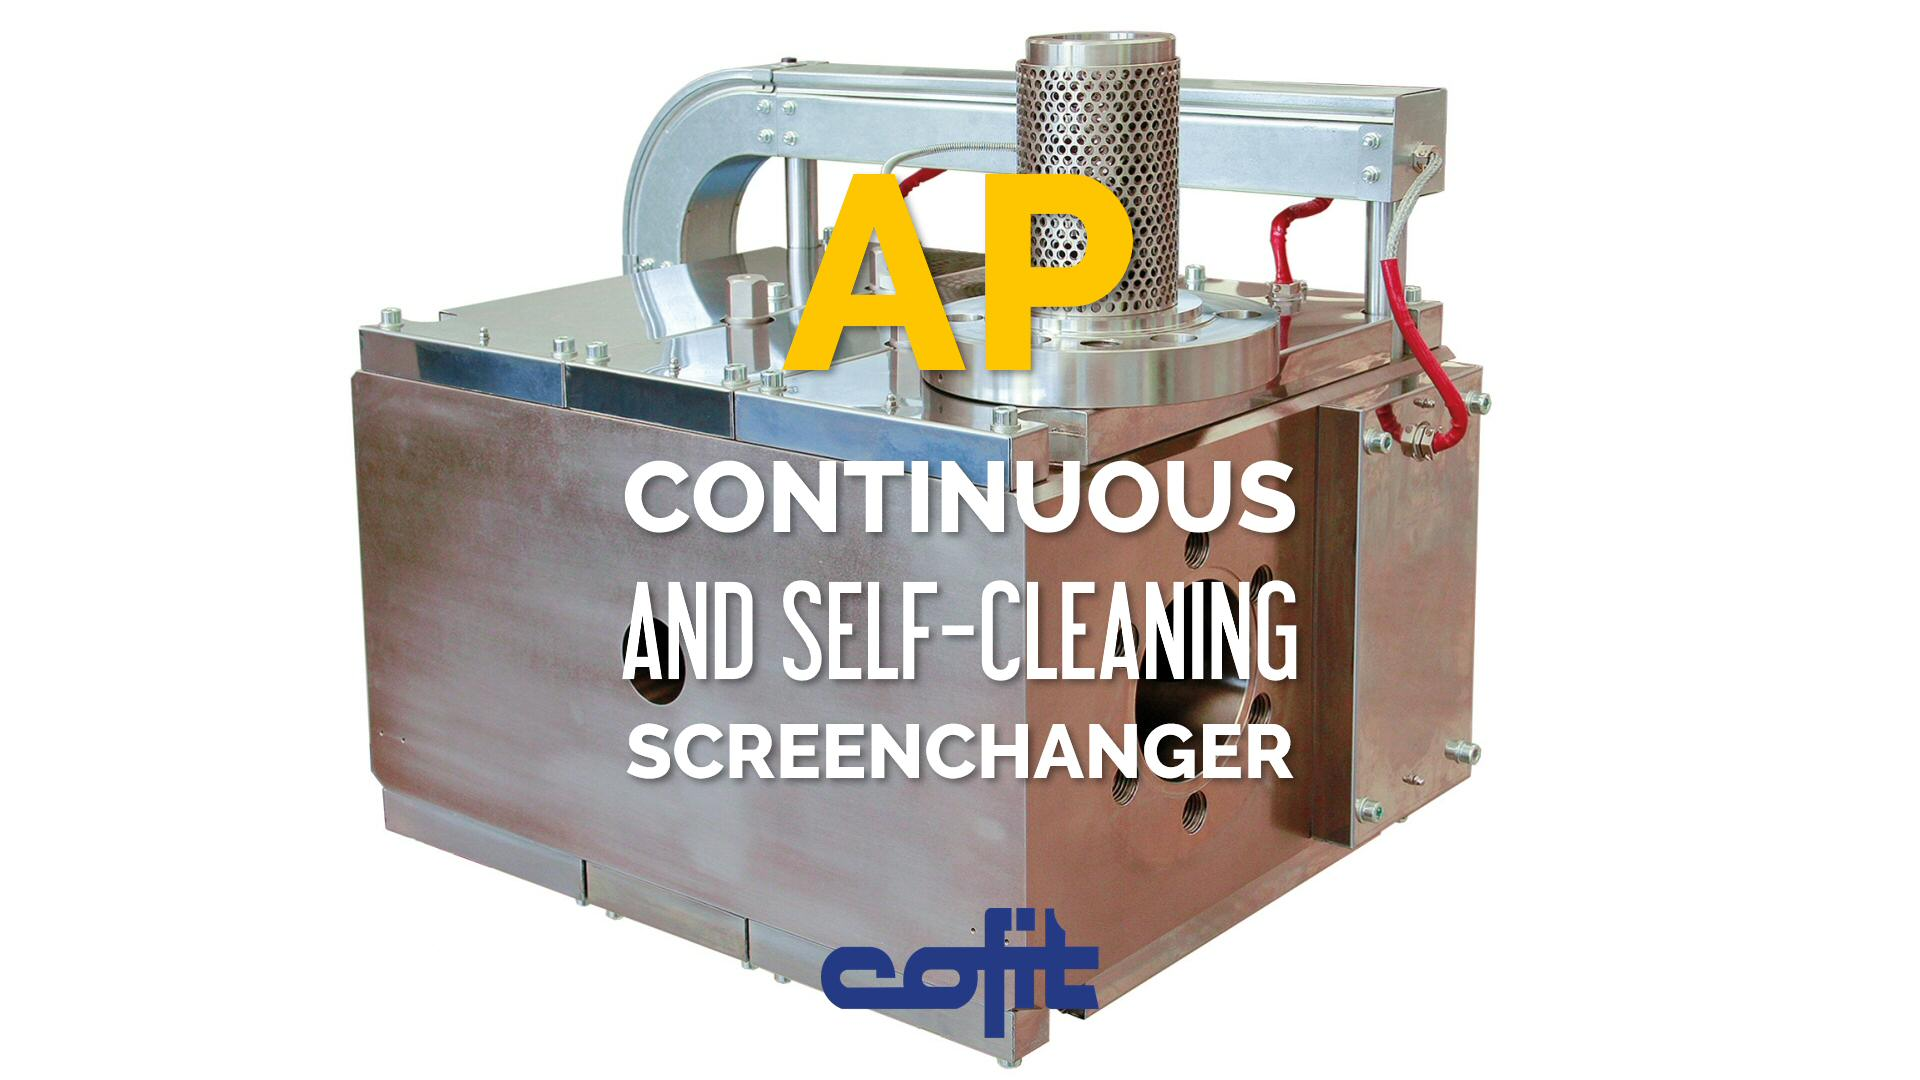 AP - Continuous self-cleaning screenchanger